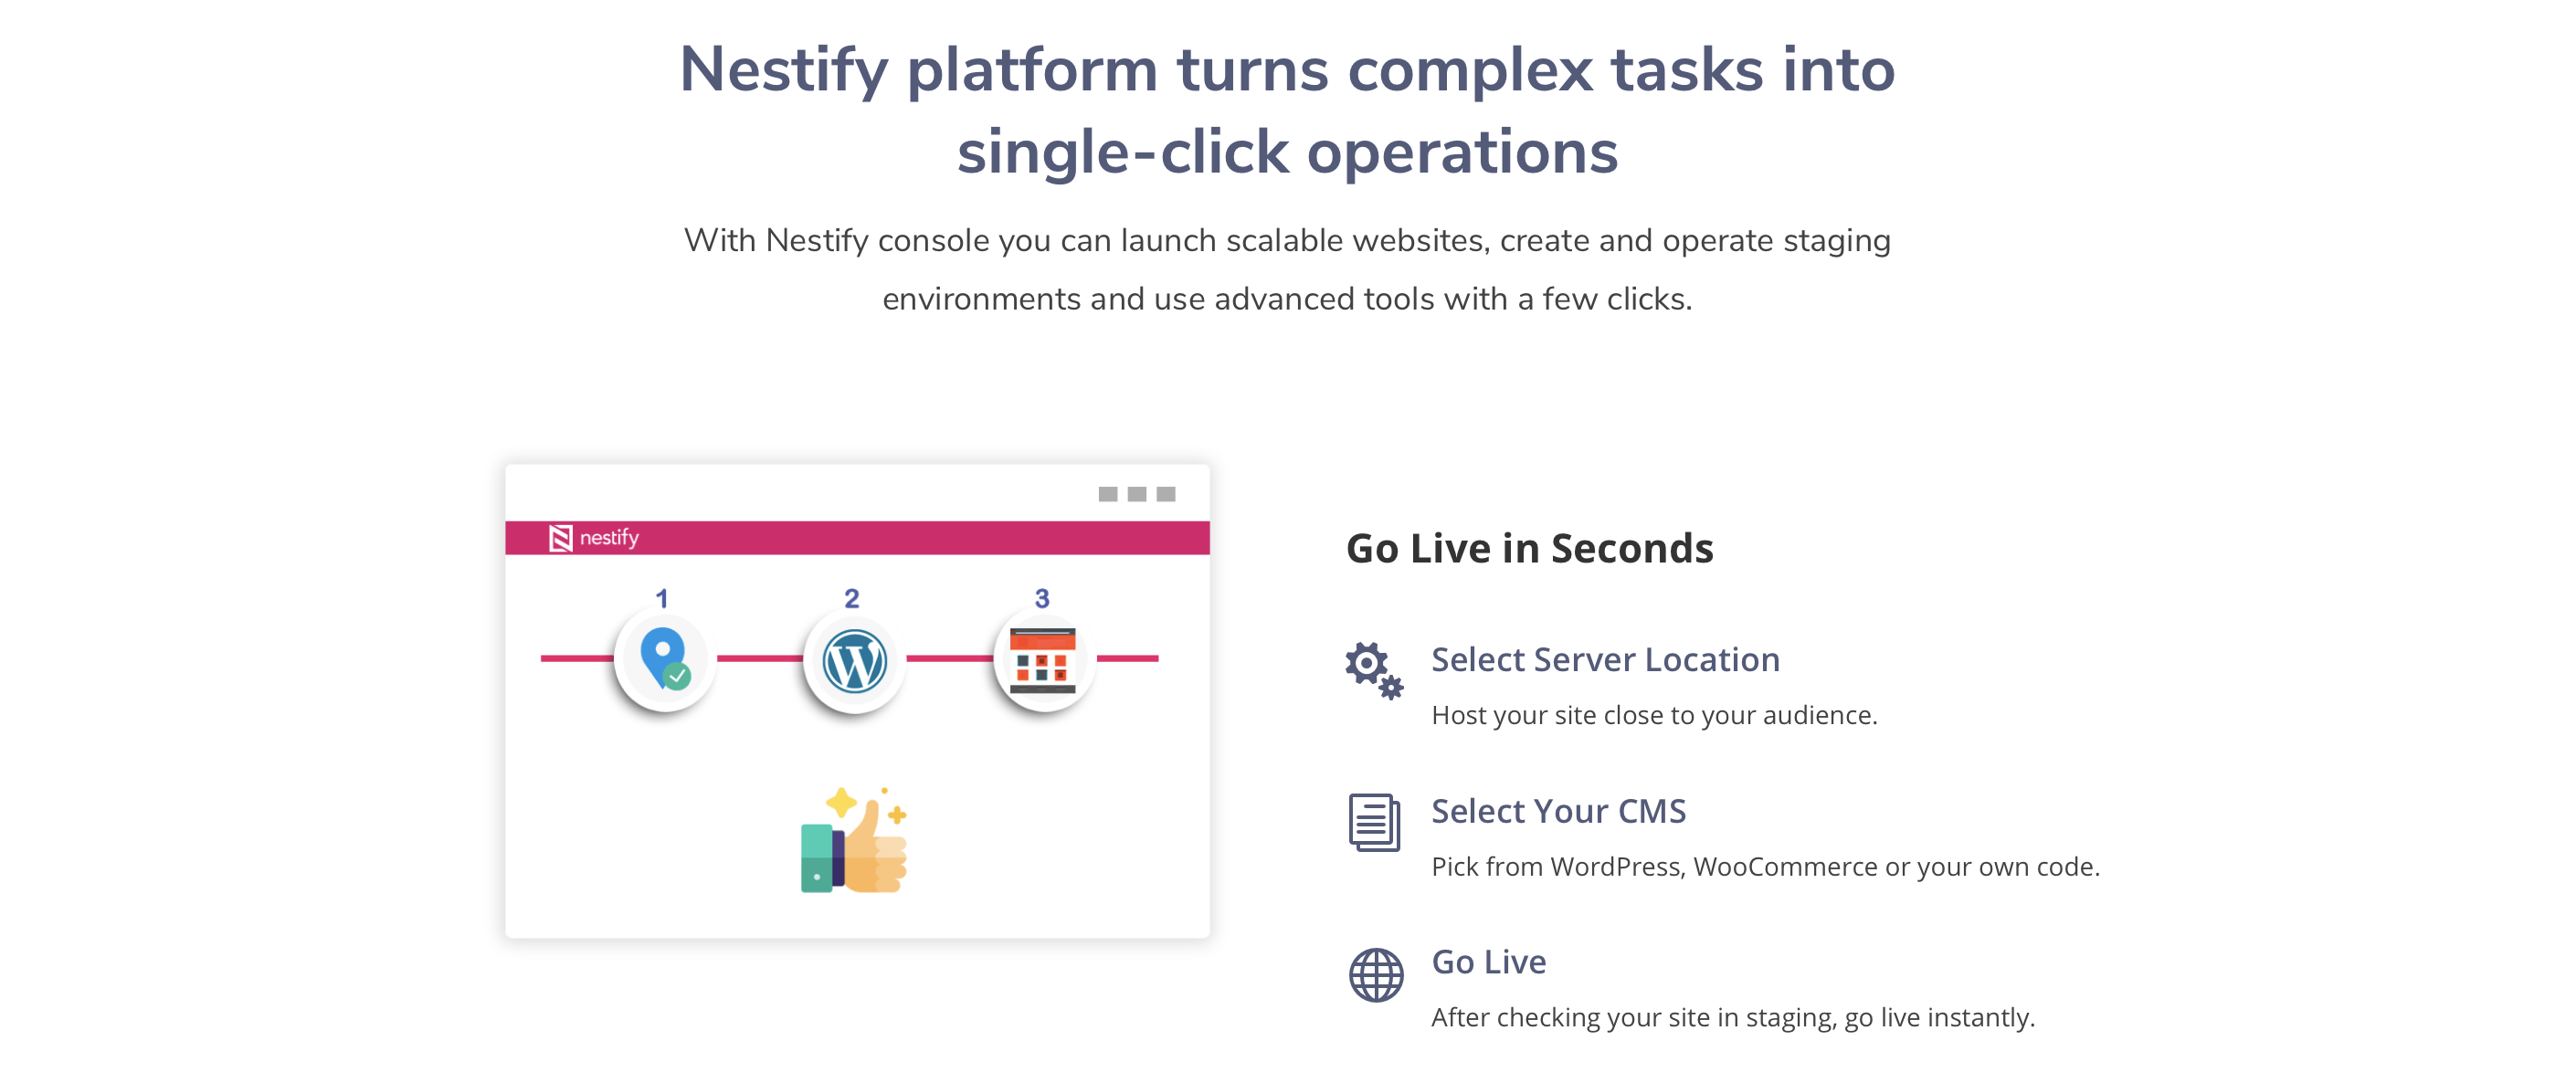 single-click-launch-servers-and-CMS-selection